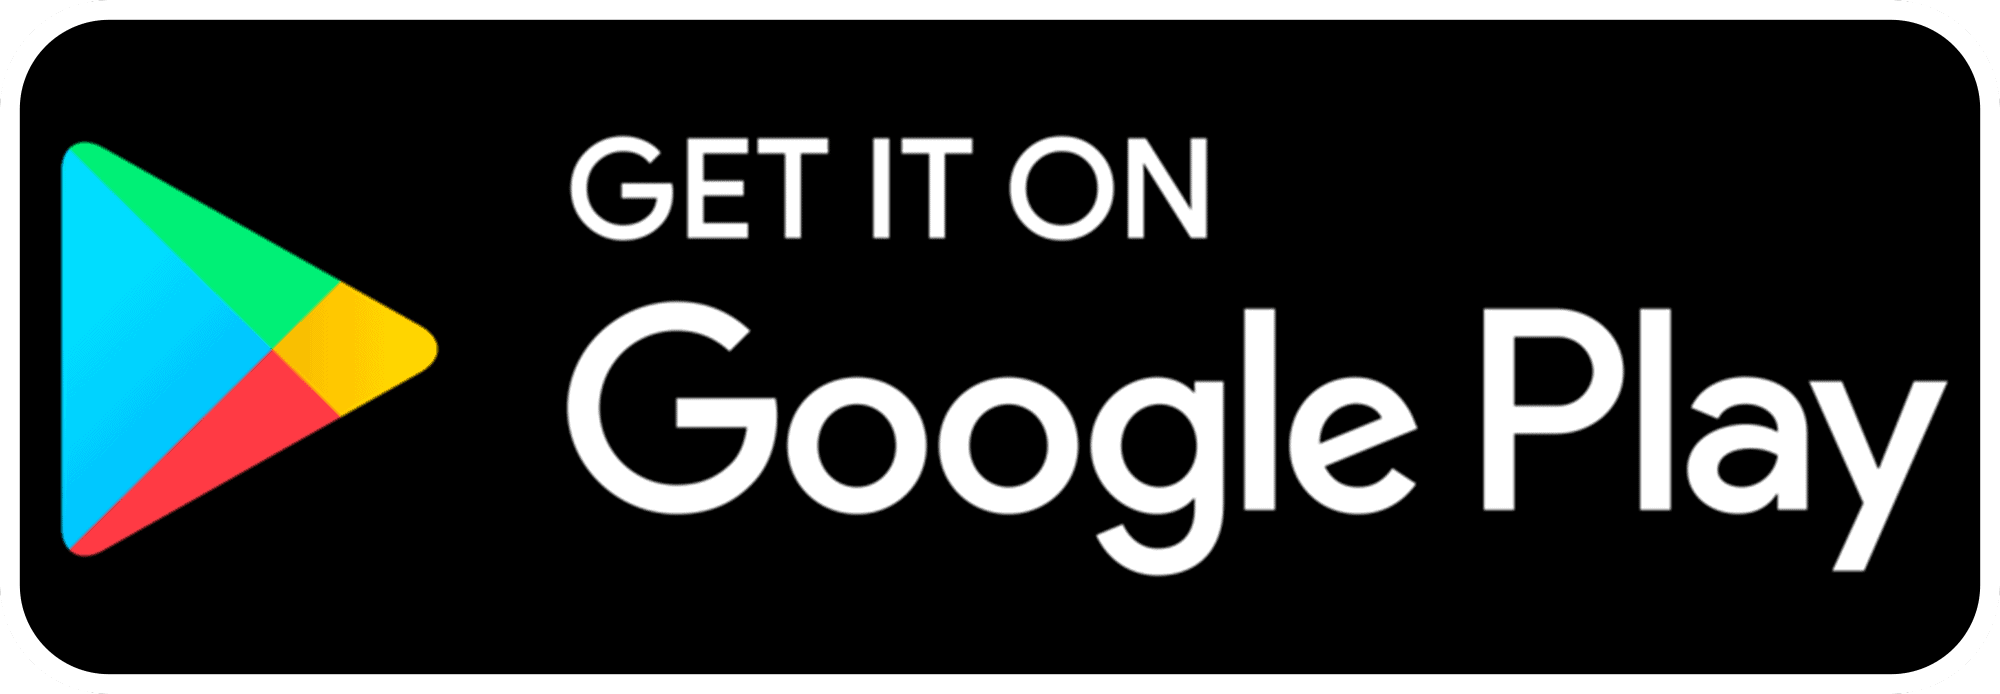 Download-on-the-Google-Store-button-2